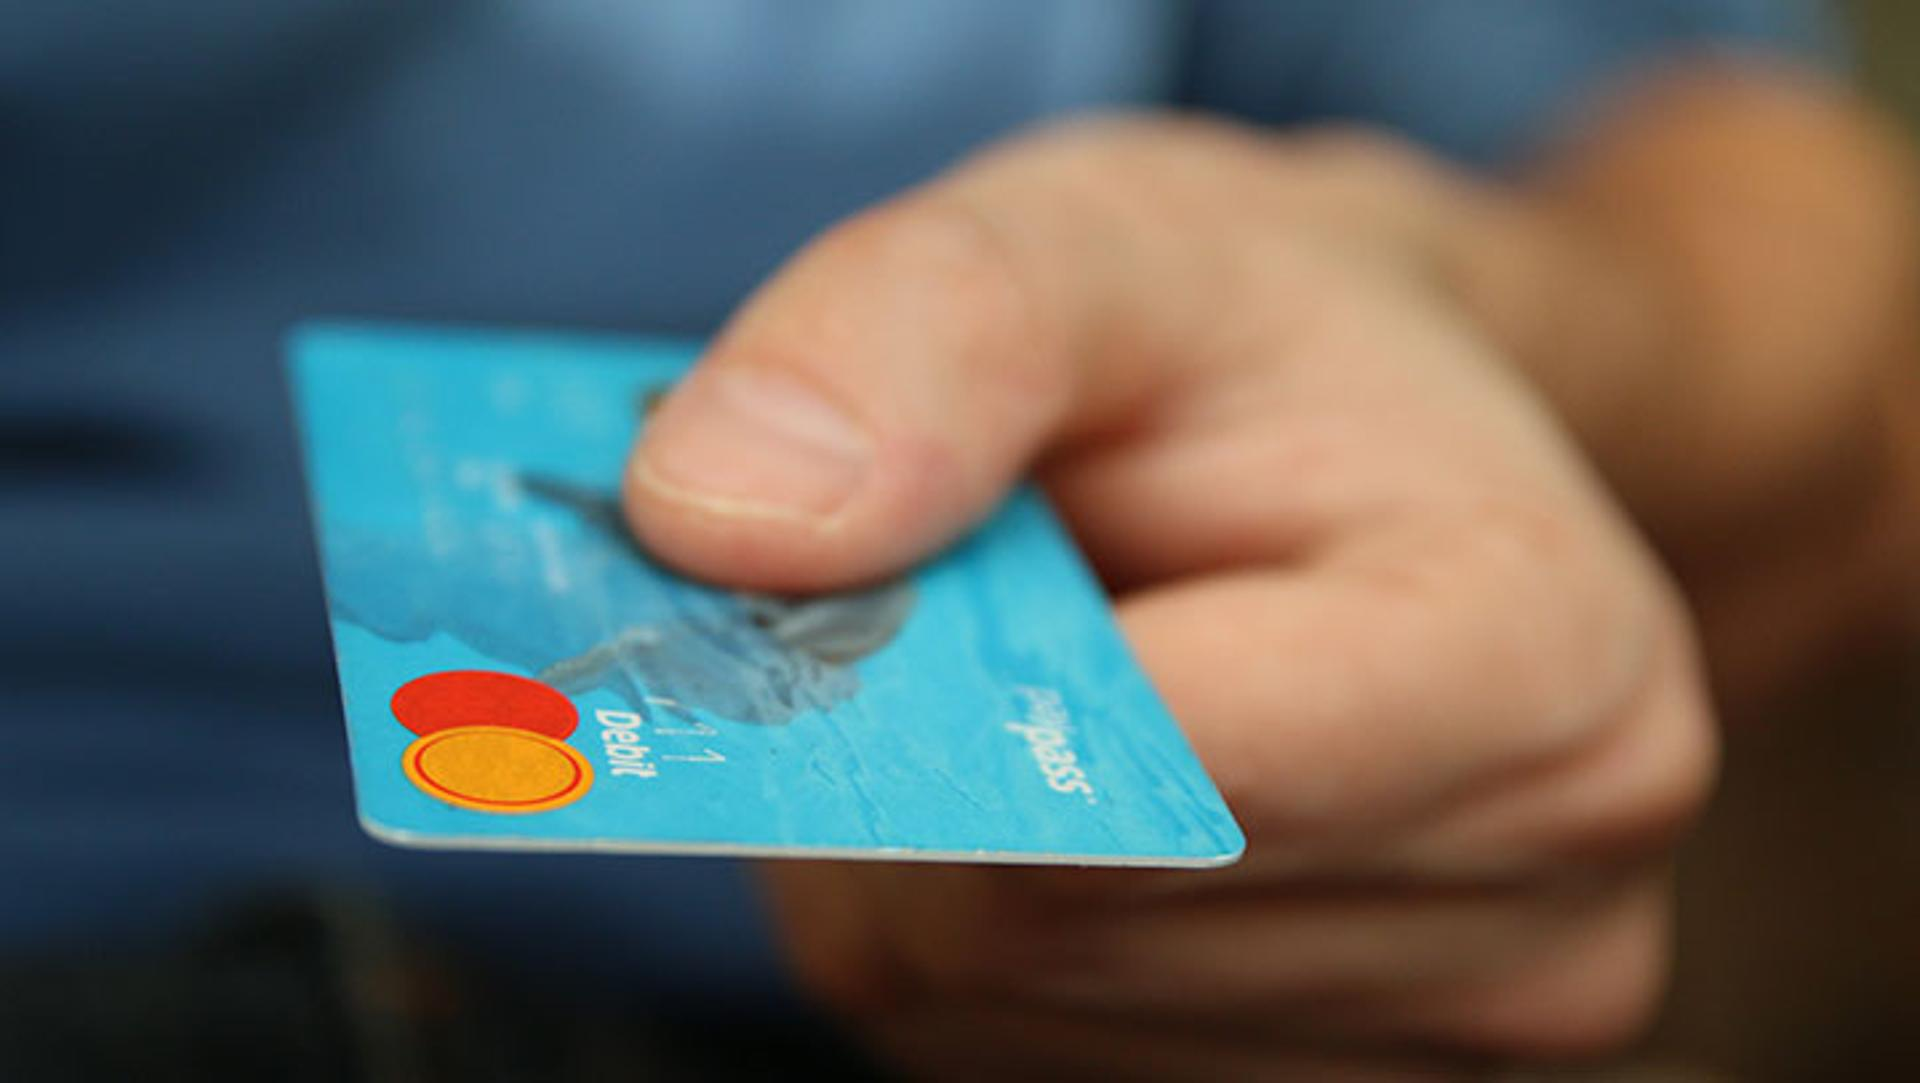 Should you accept a balance transfer credit card offer?